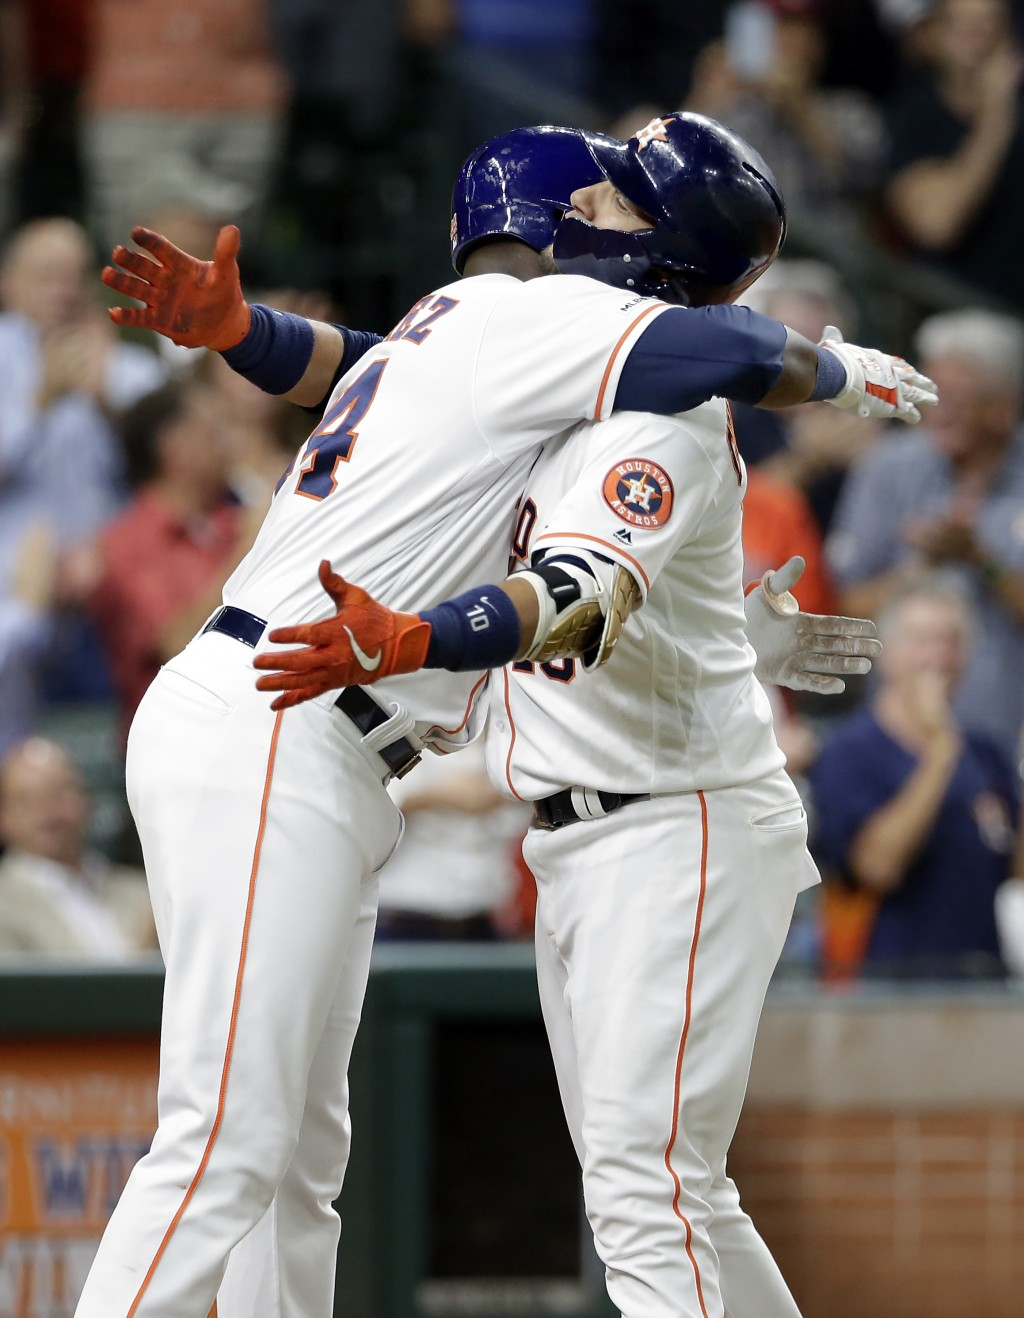 Houston Astros' Yordan Alvarez, left, and Yuli Gurriel, right, hug at home plate after they both scored on Gurriel's two-run home run during the fifth